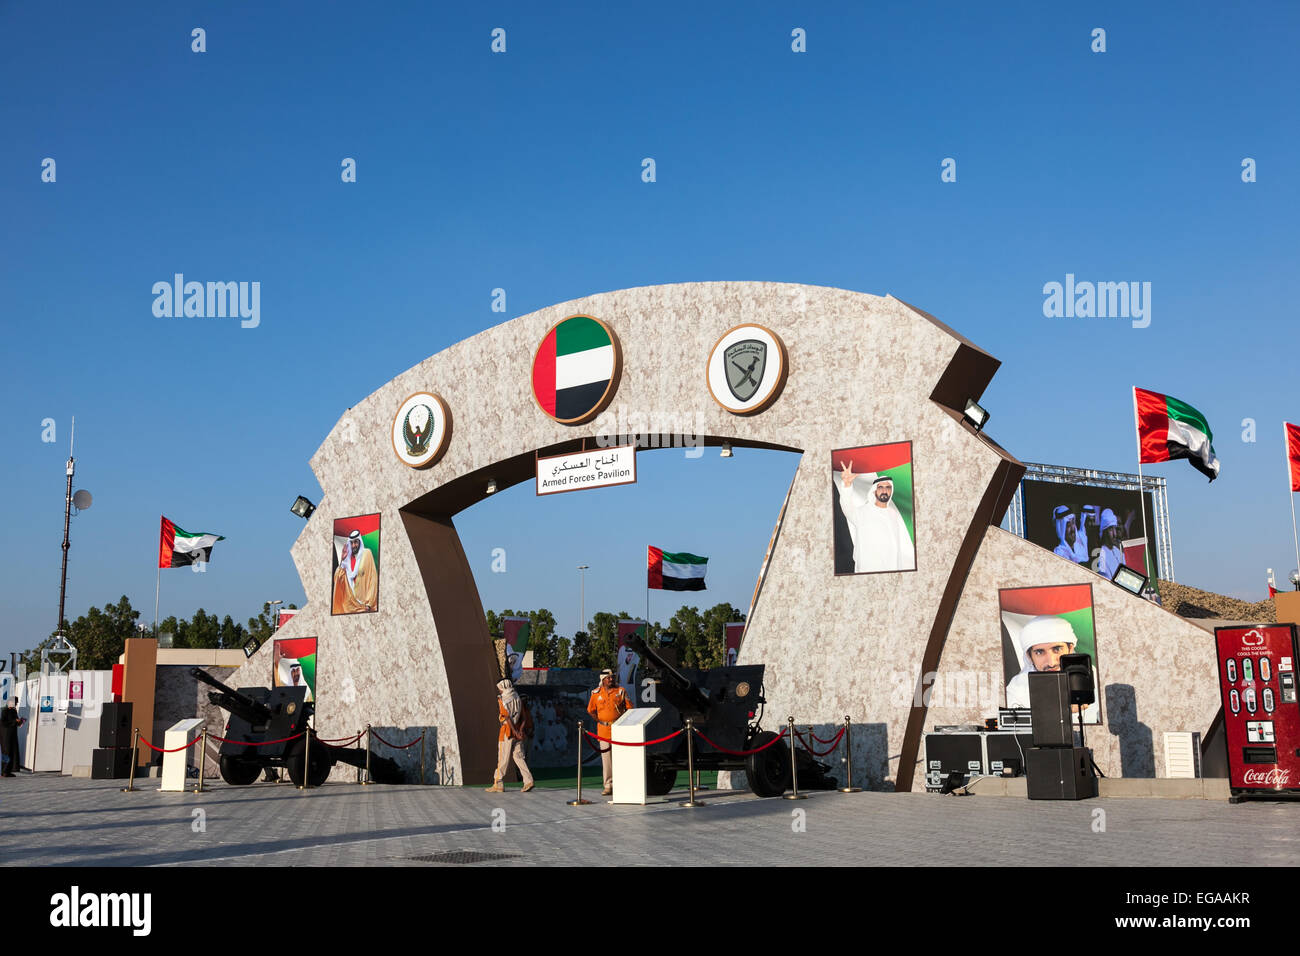 Armed Forces Pavilion at the Global Village in Dubai - Stock Image